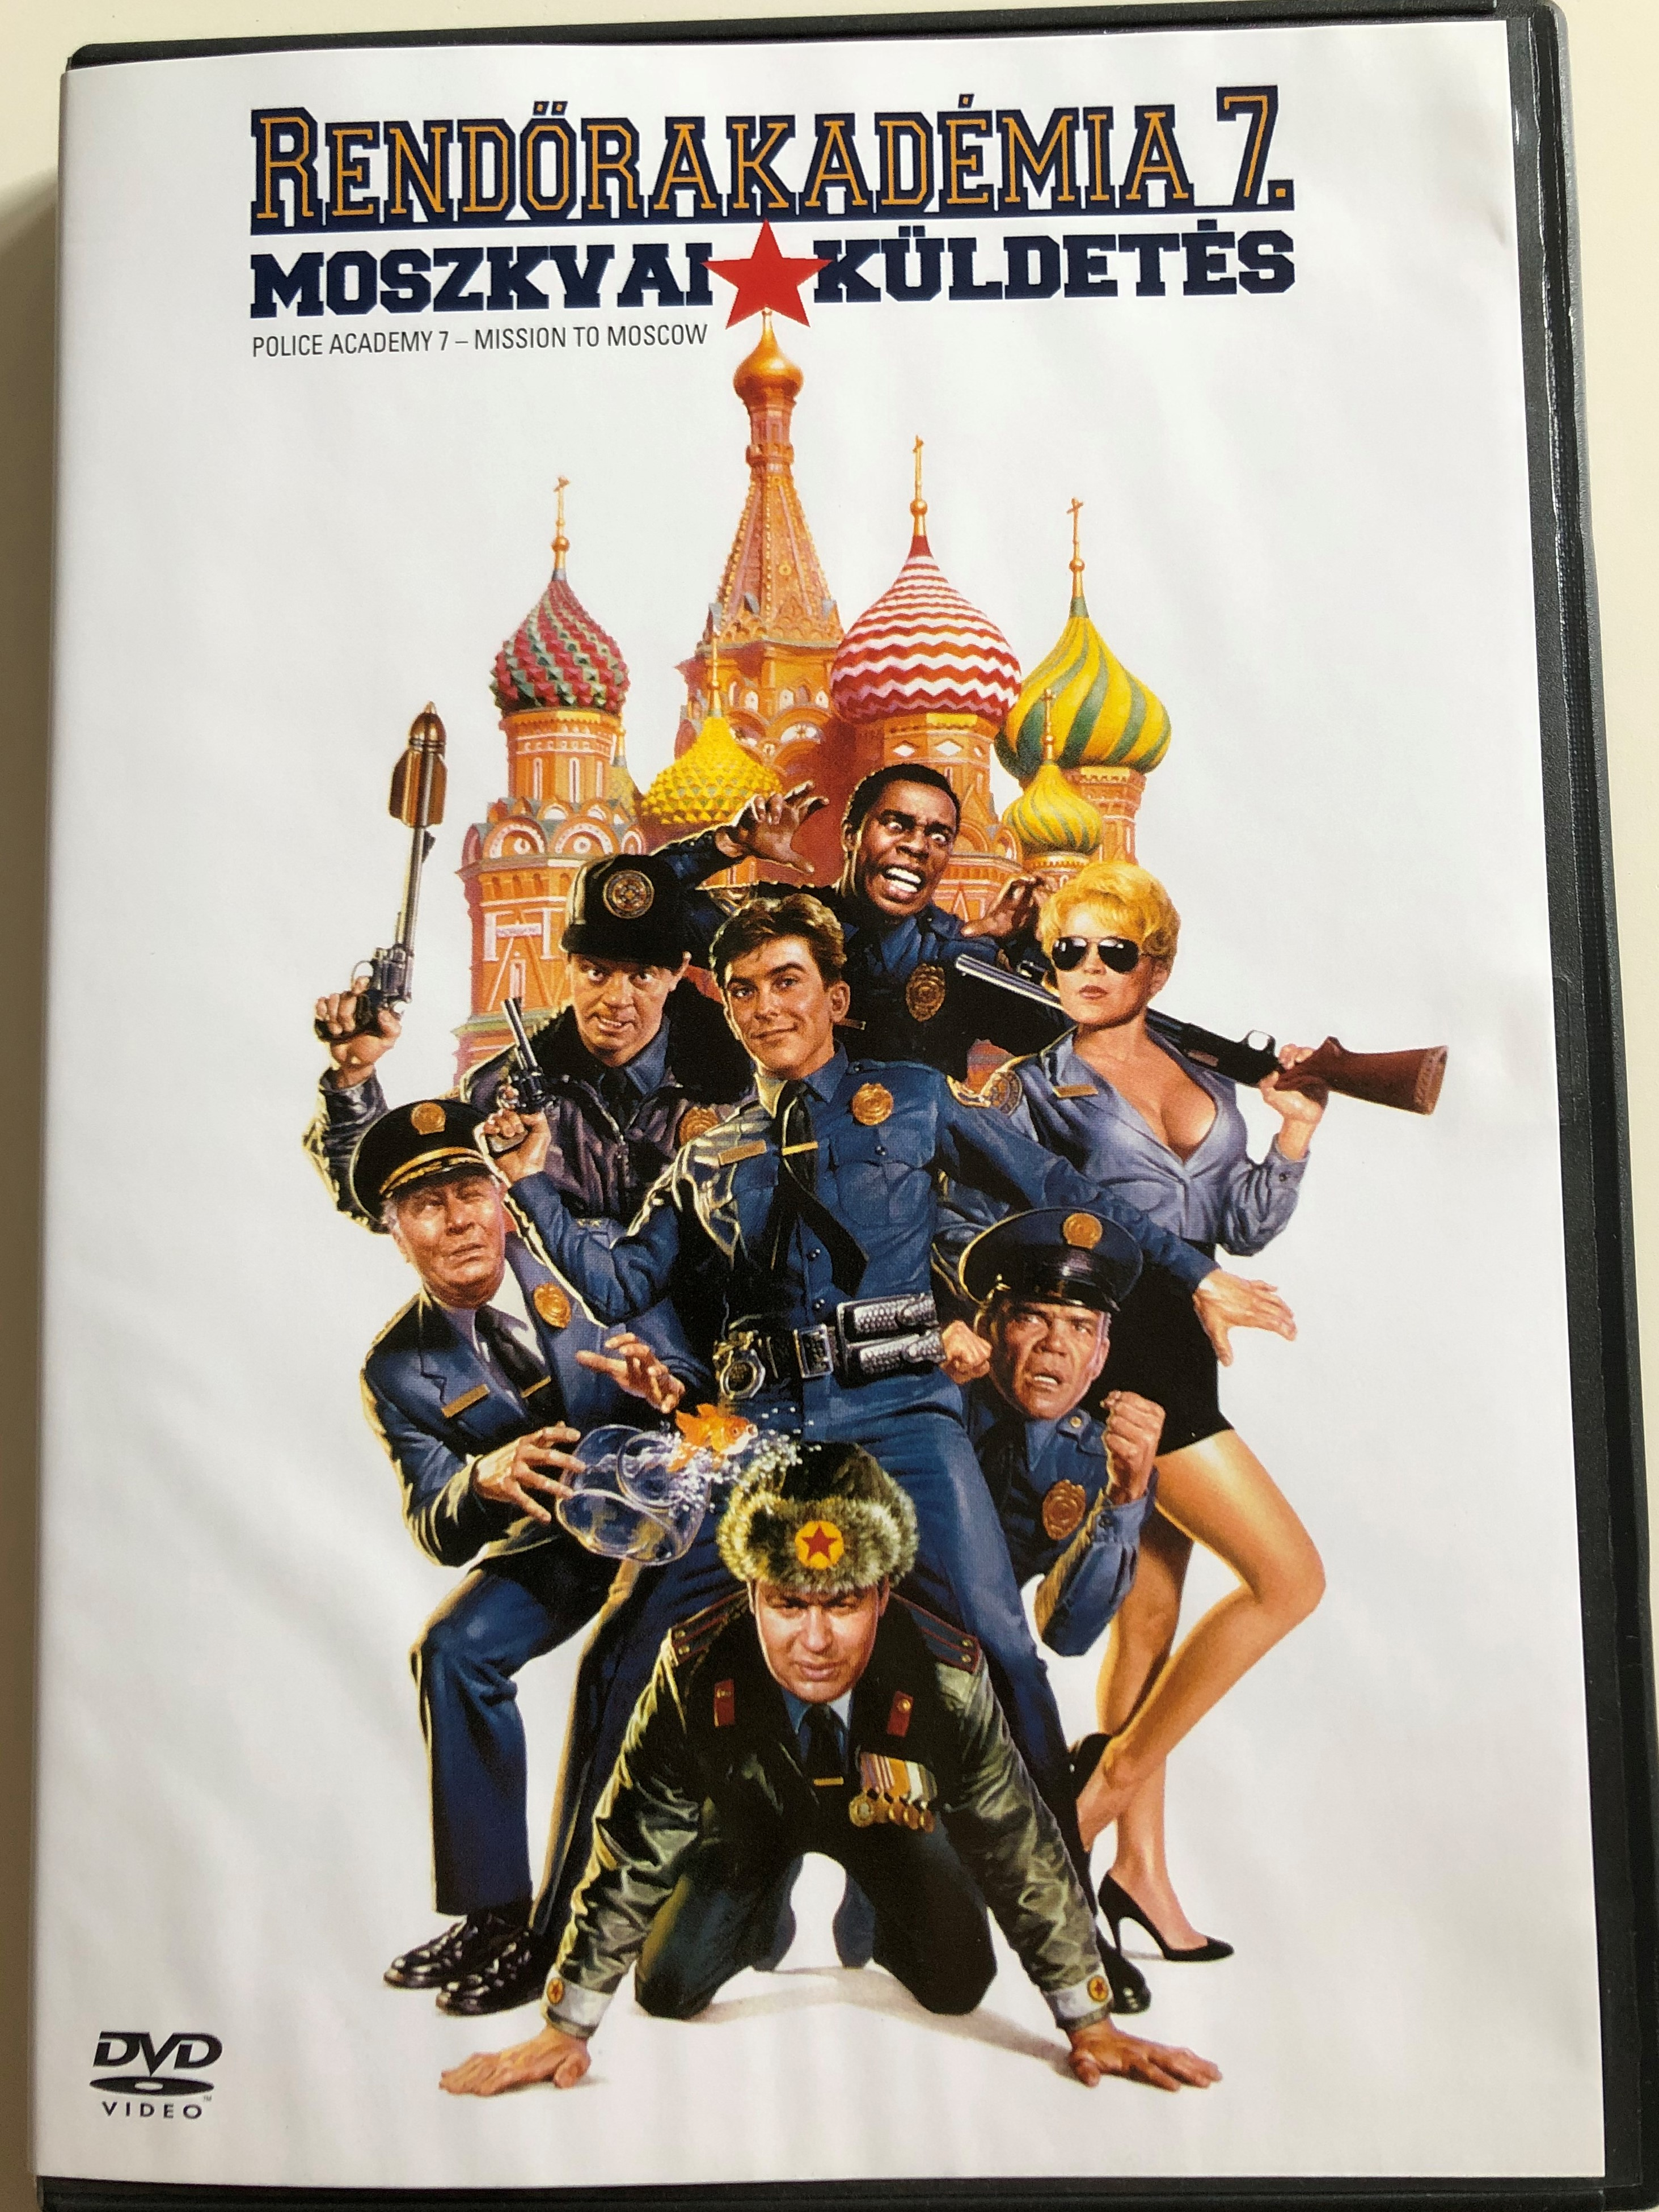 police-academy-7-mission-to-moscow-dvd-1994-rend-rakad-mia-7.-moszkvai-k-ldet-s-directed-by-alan-mette-1-.jpg